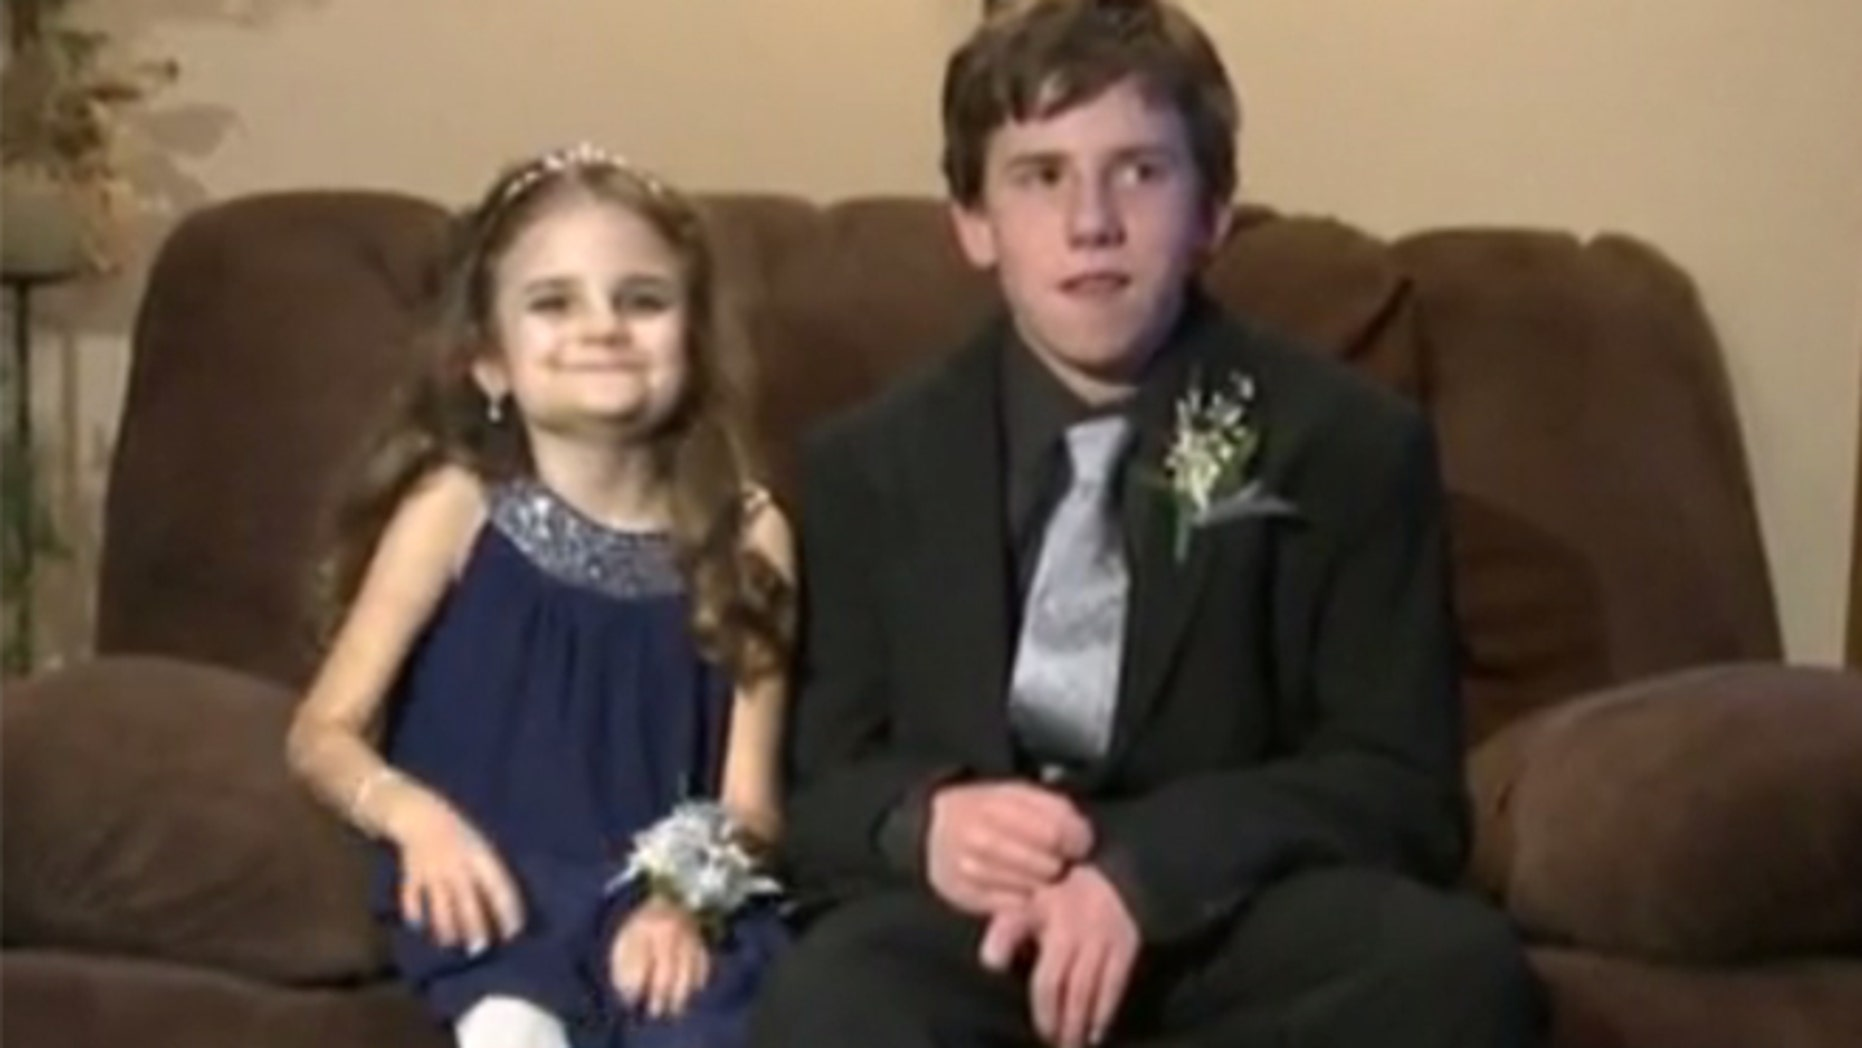 AJ Spader, right, took his sister, who is battling a rare cancer, to a winter dance instead of a classmate.